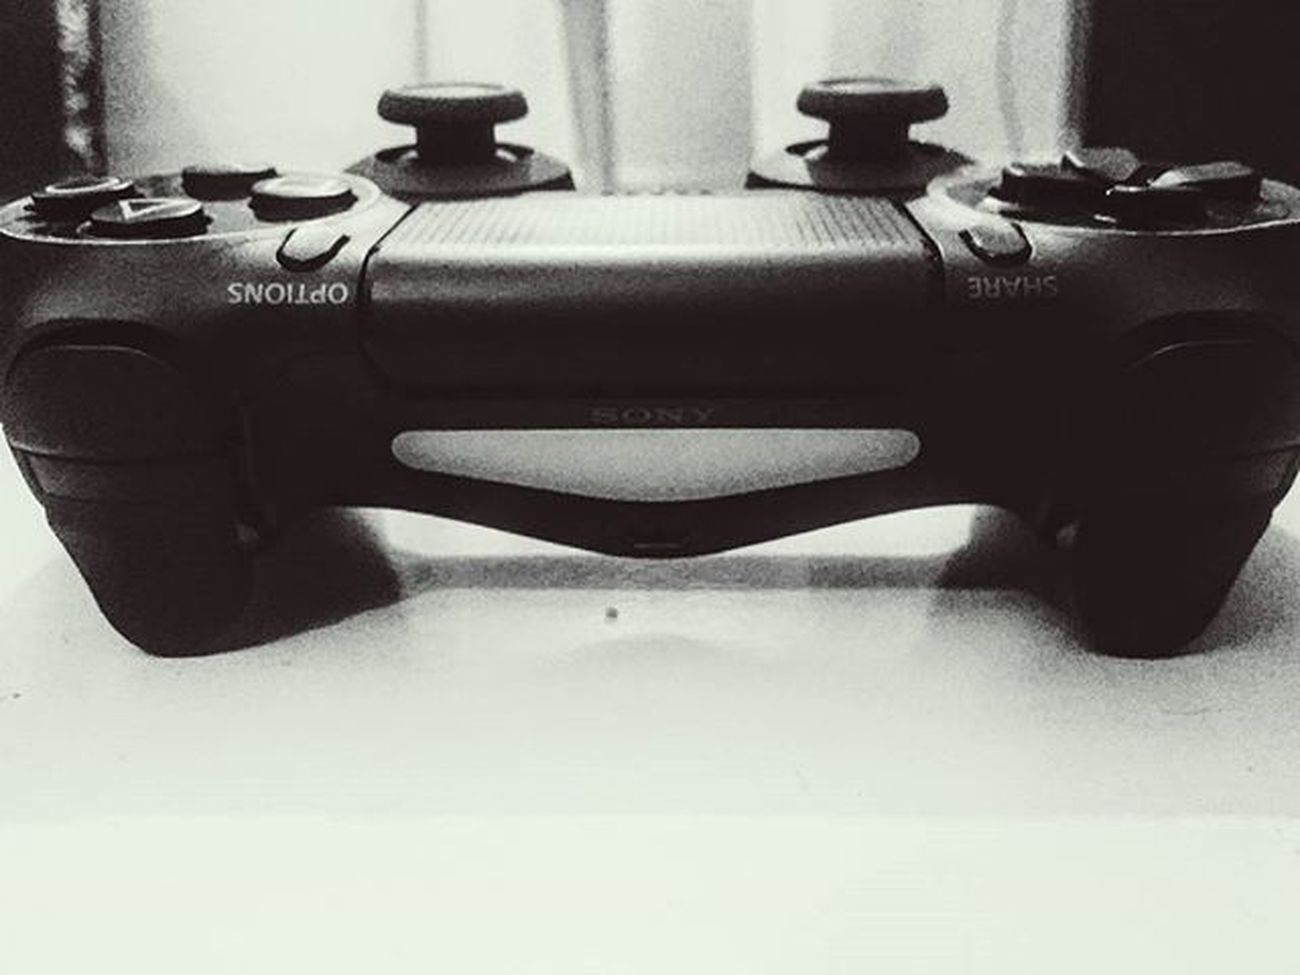 Peace is here PS4 Gaminglife Dualshock4 Graphics😍 Fifa16 Thrill Ab or kya chahiye yr zindagi se yr.. 😁😁